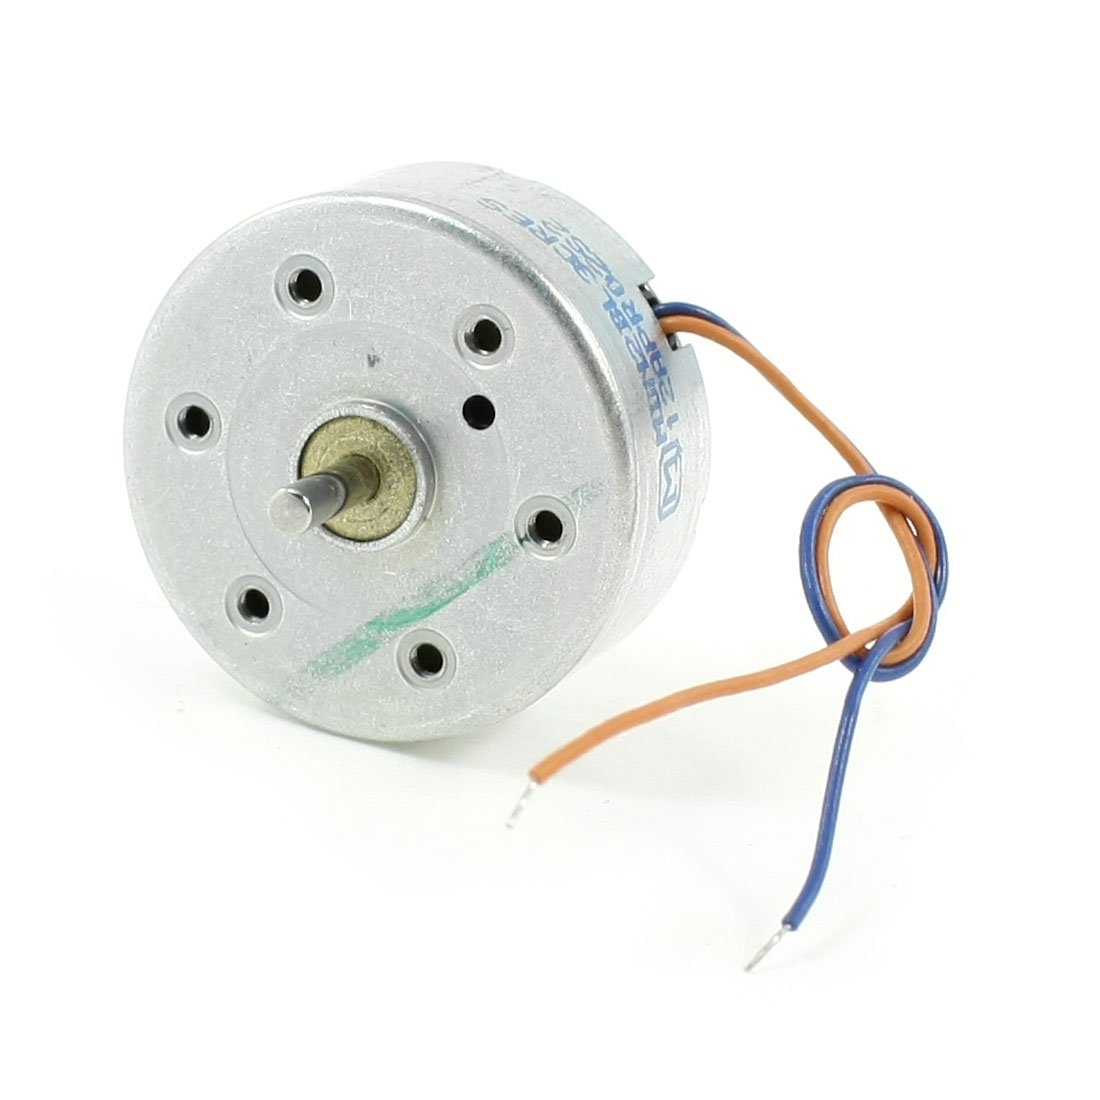 10mm CD motor for Lima & Hornby